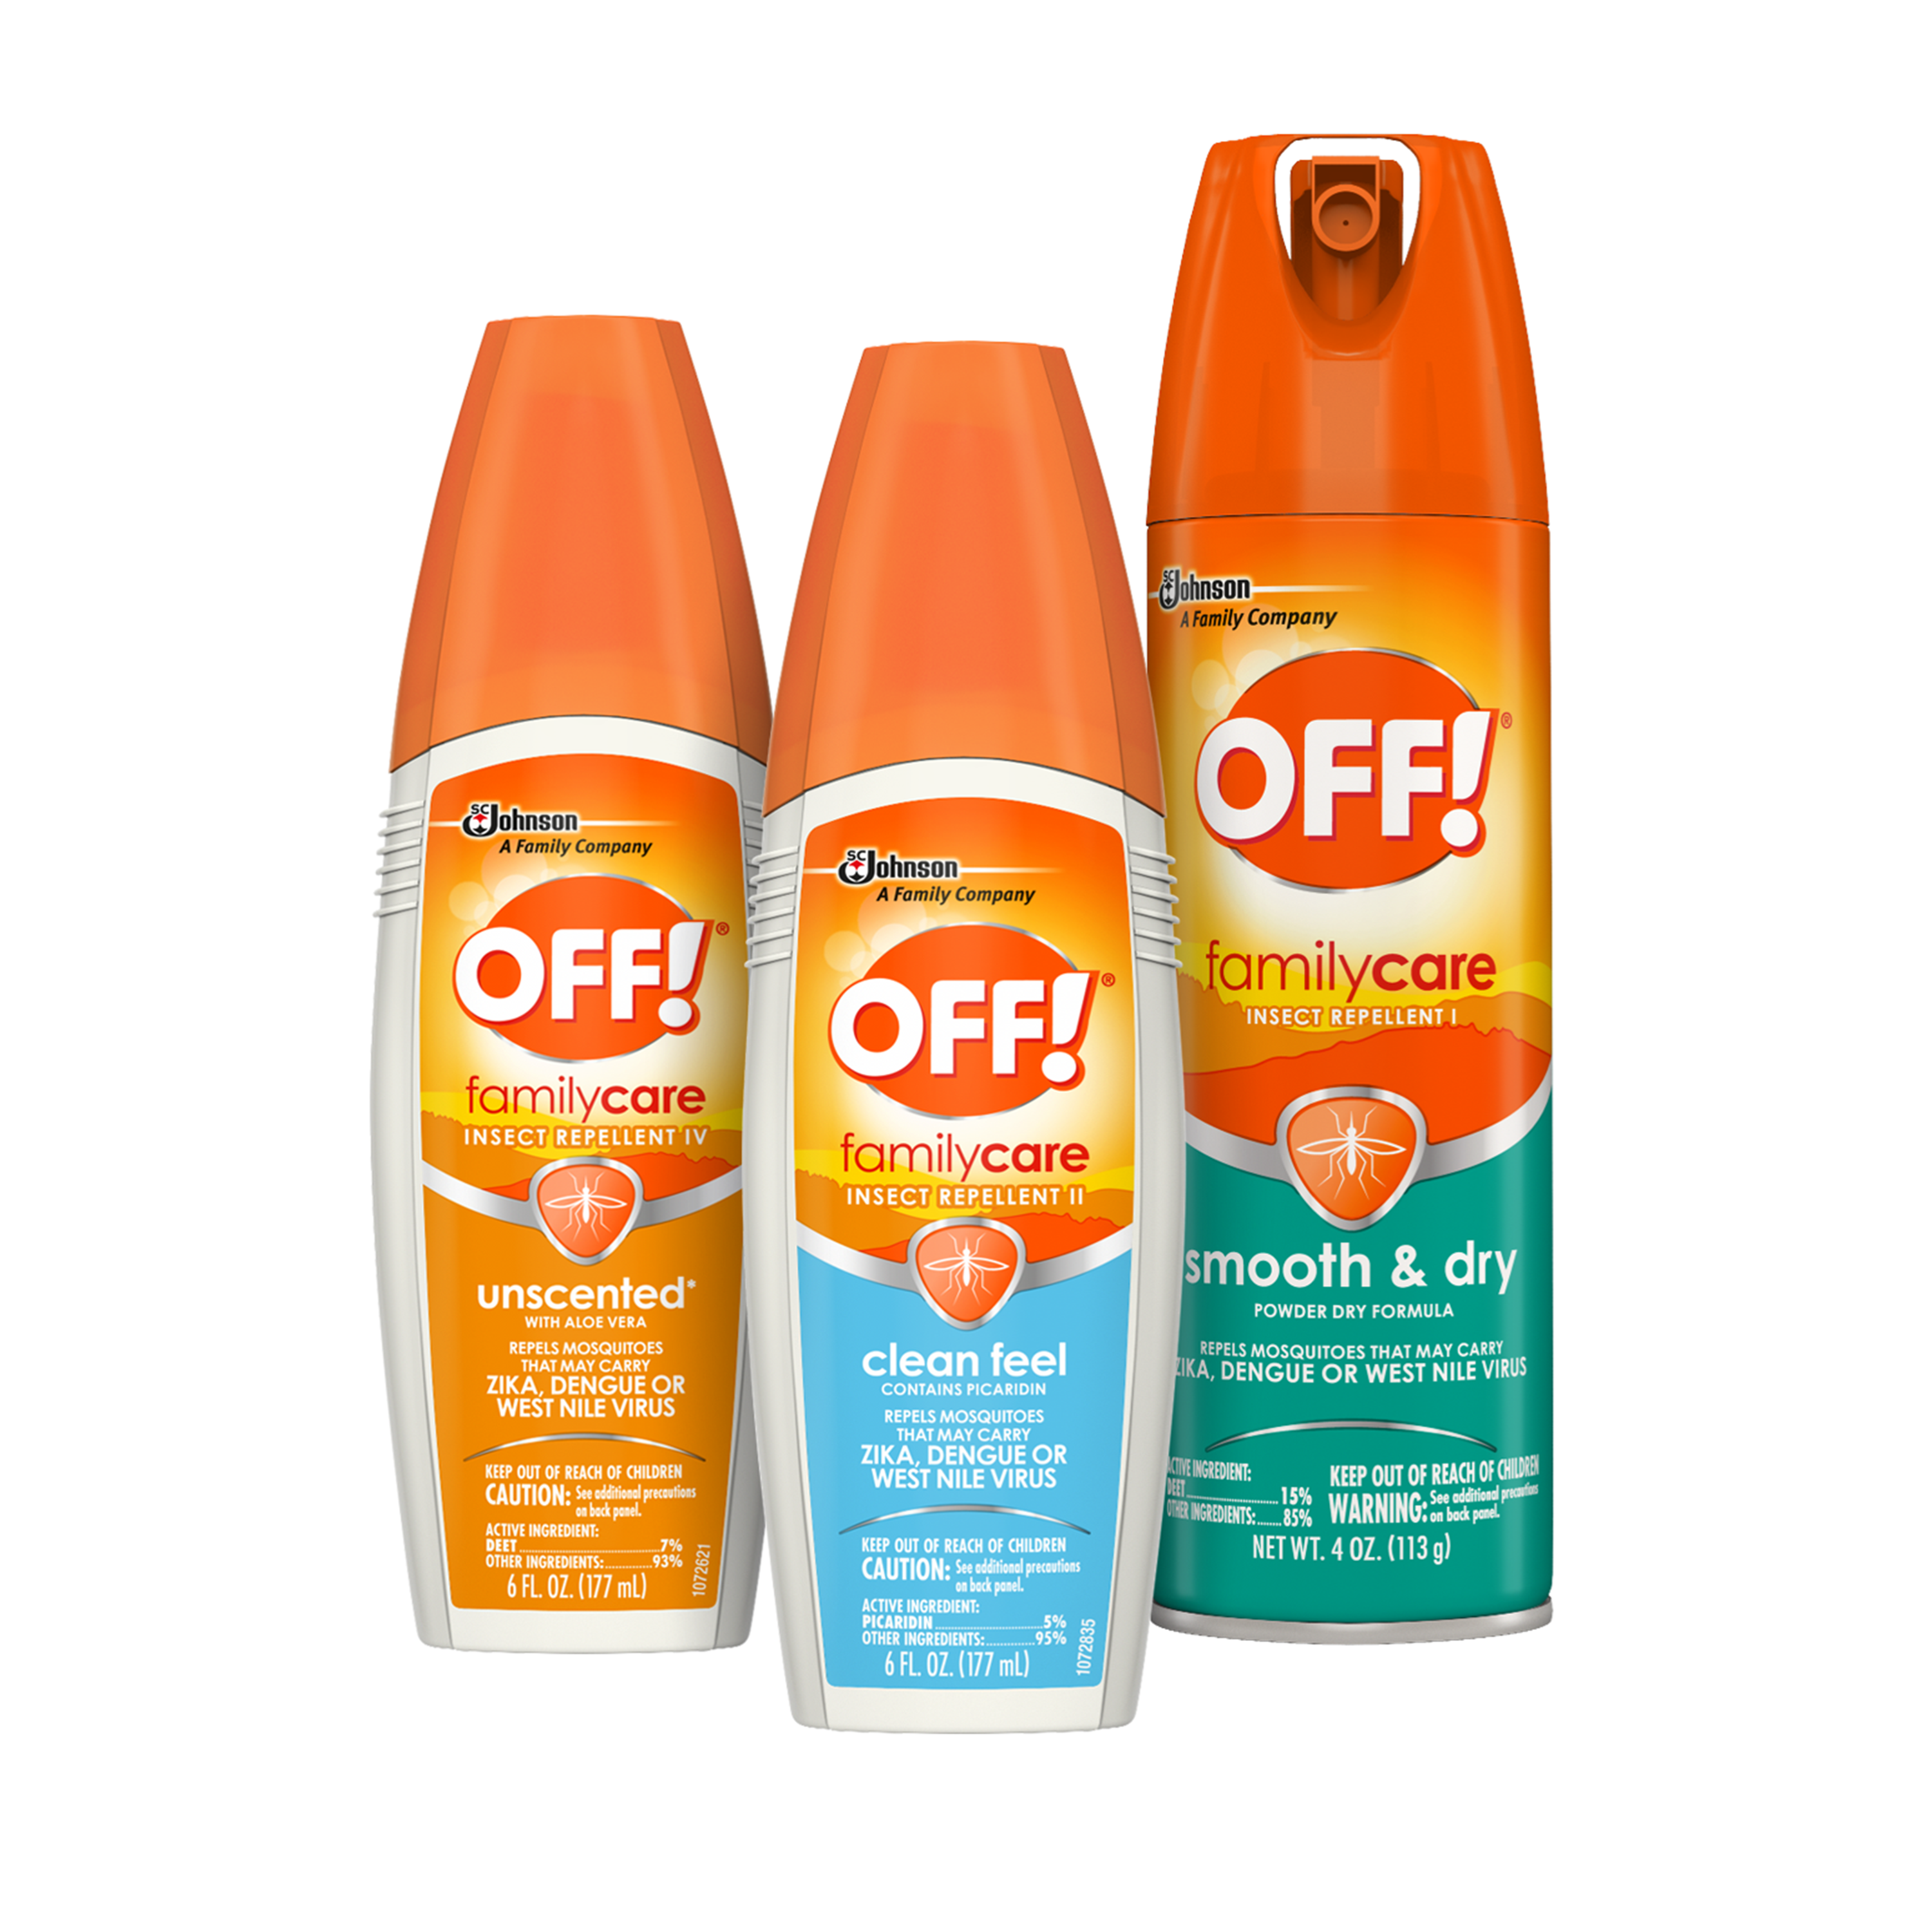 composite-page-thumbnail-off-familycare-insect-repellent